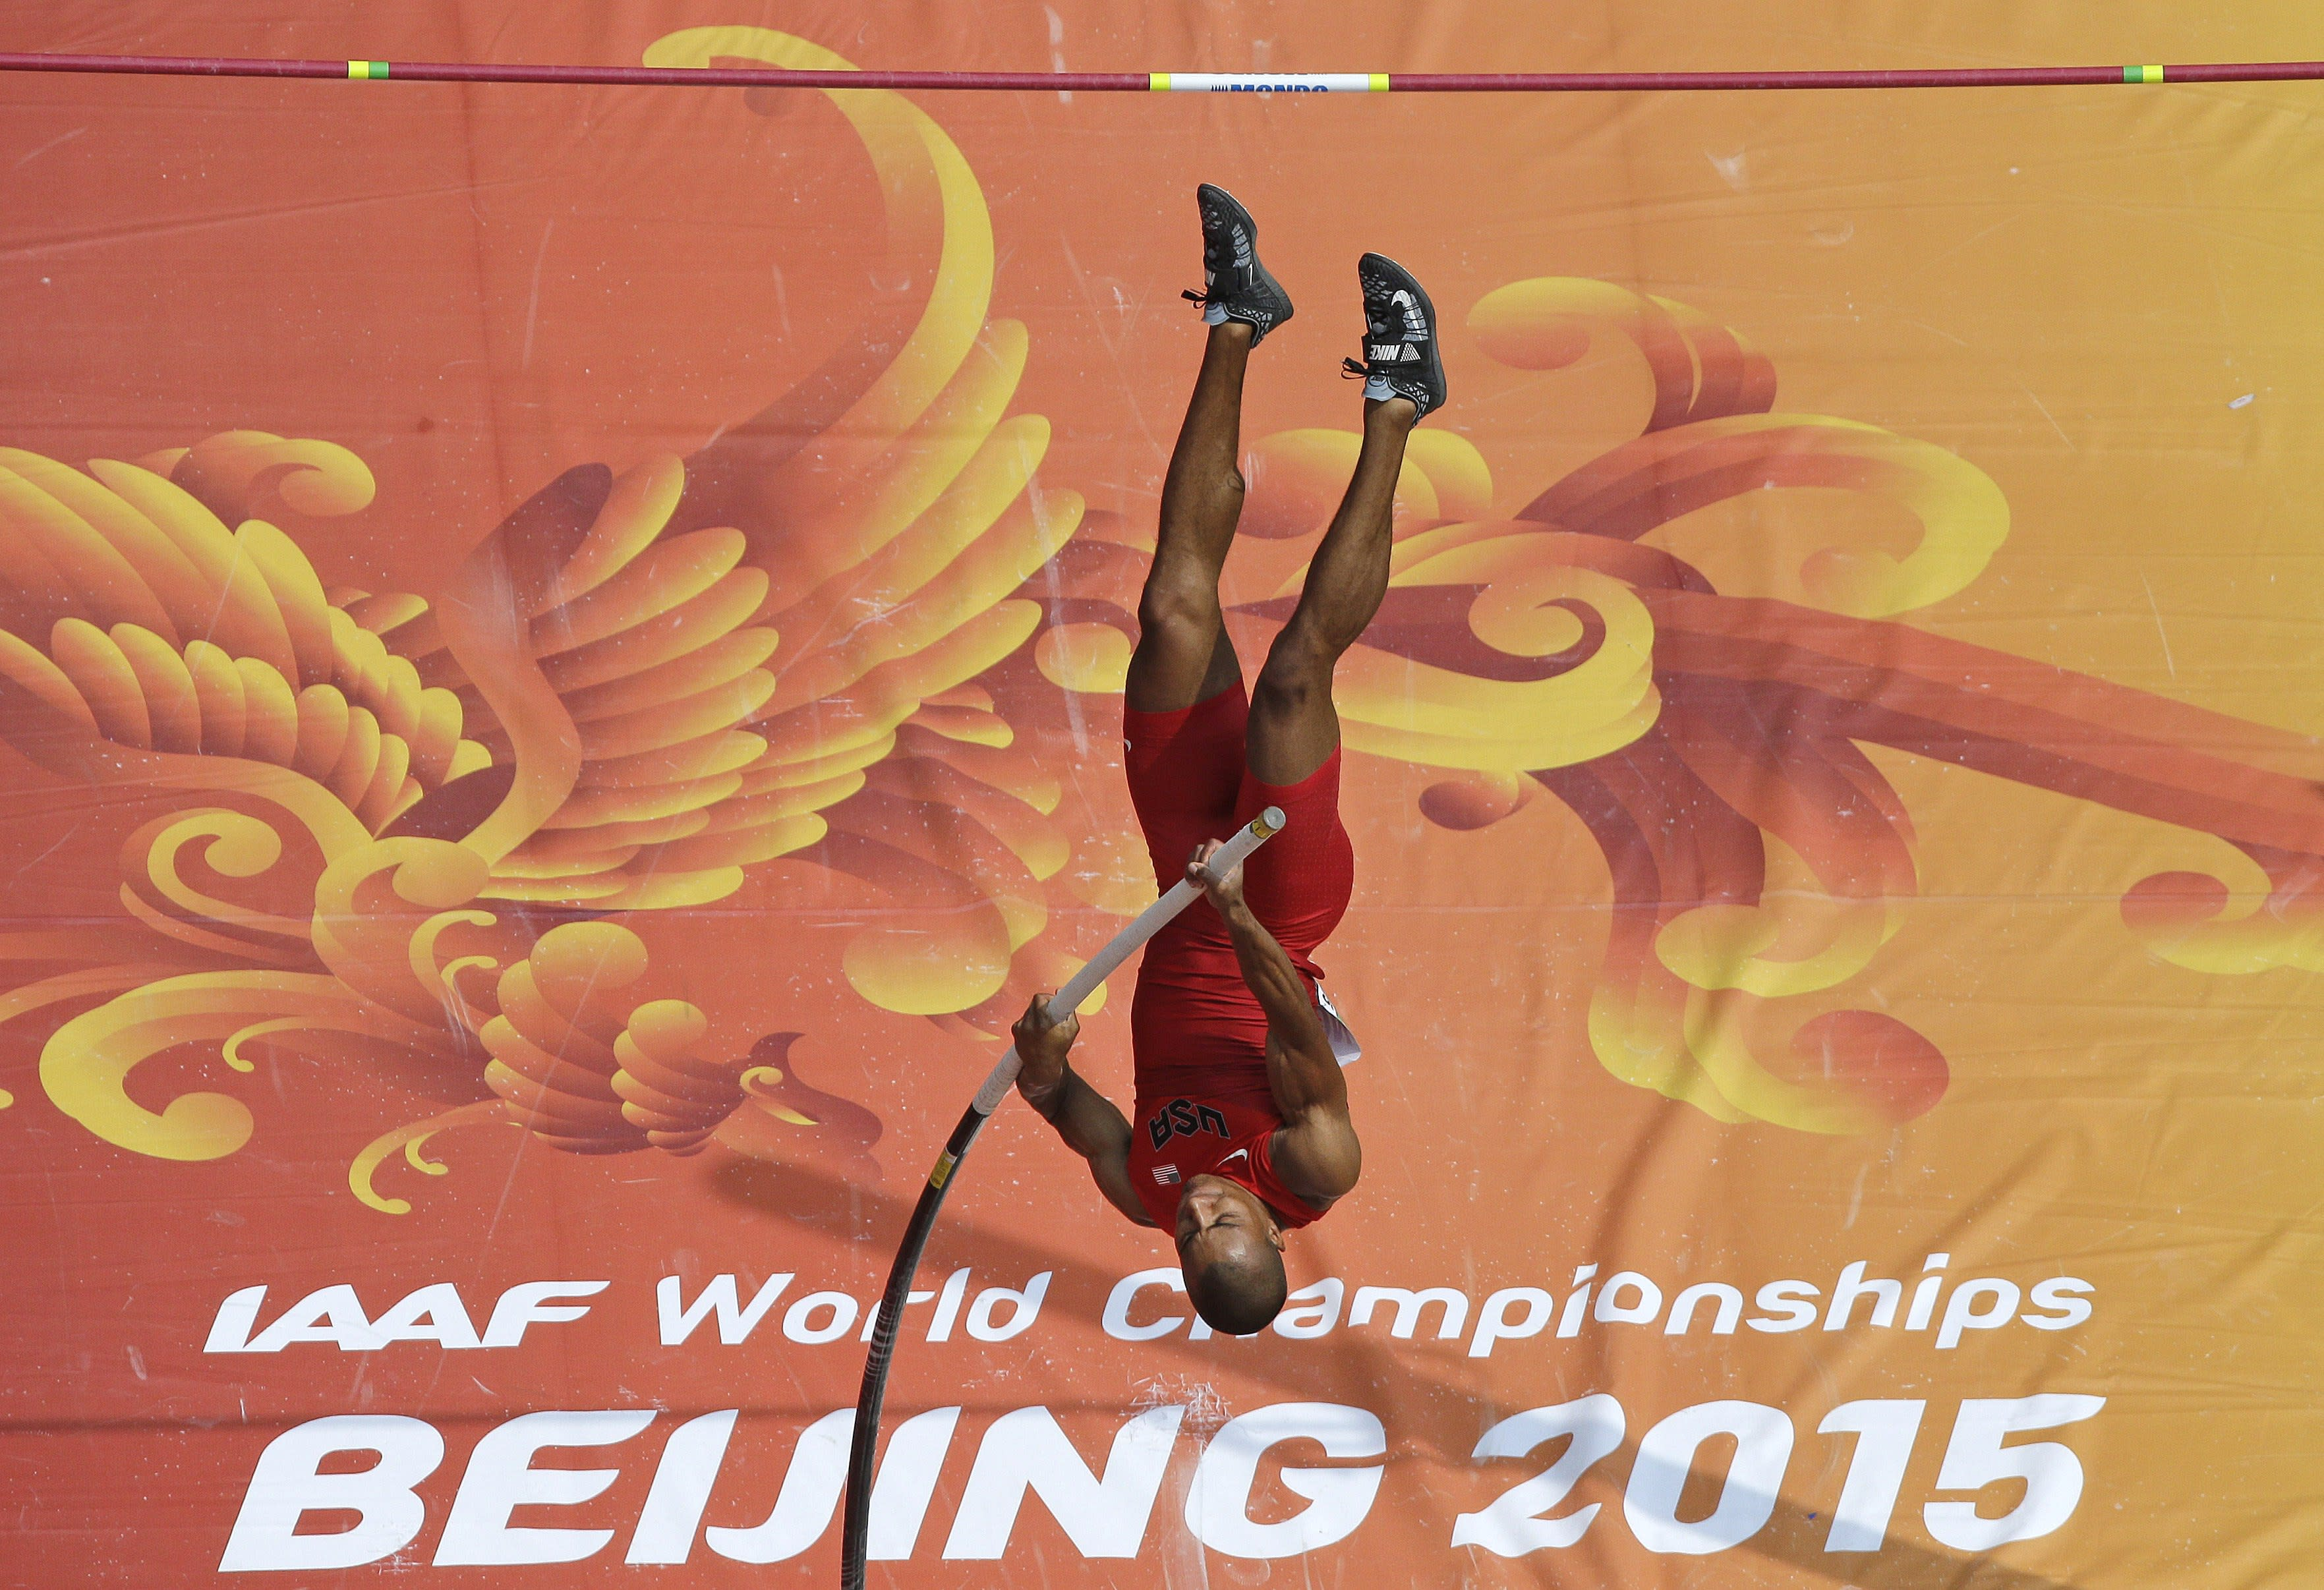 Eaton closes in on decathlon gold at worlds; Relays start